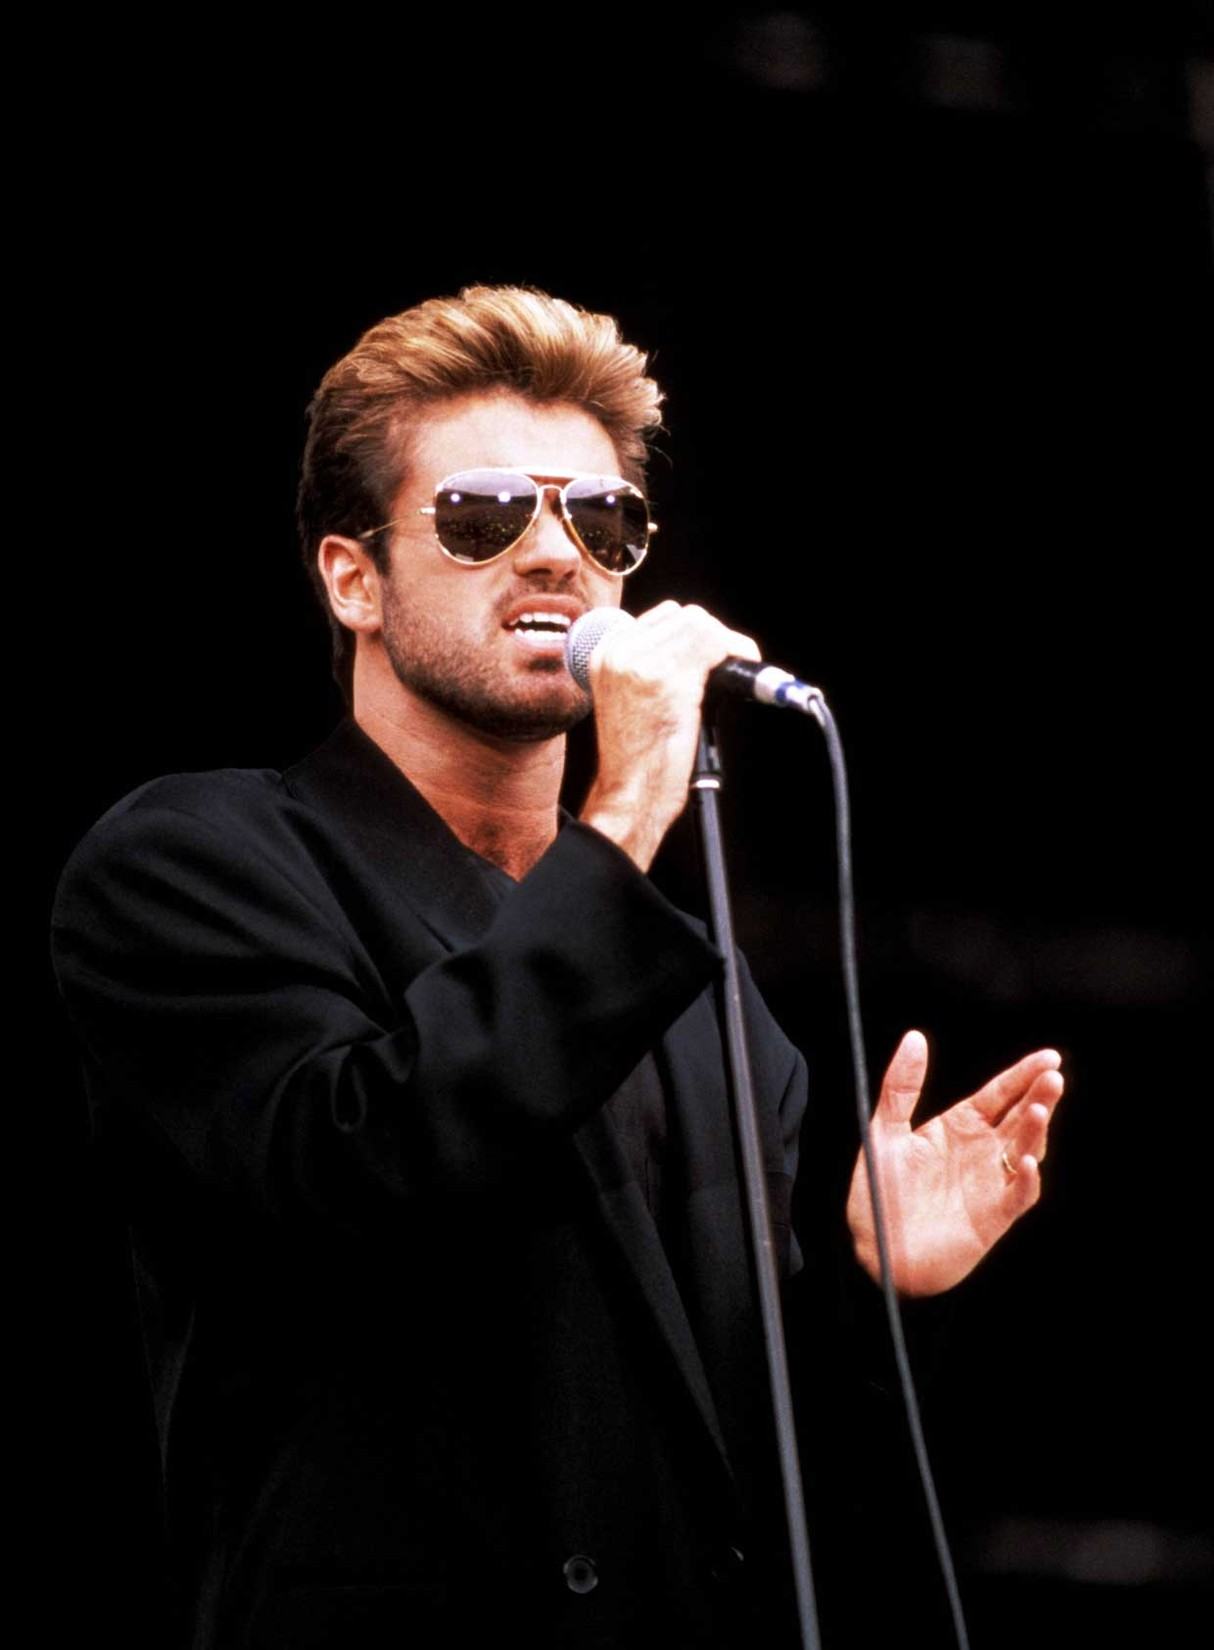 George Michael in 1988.